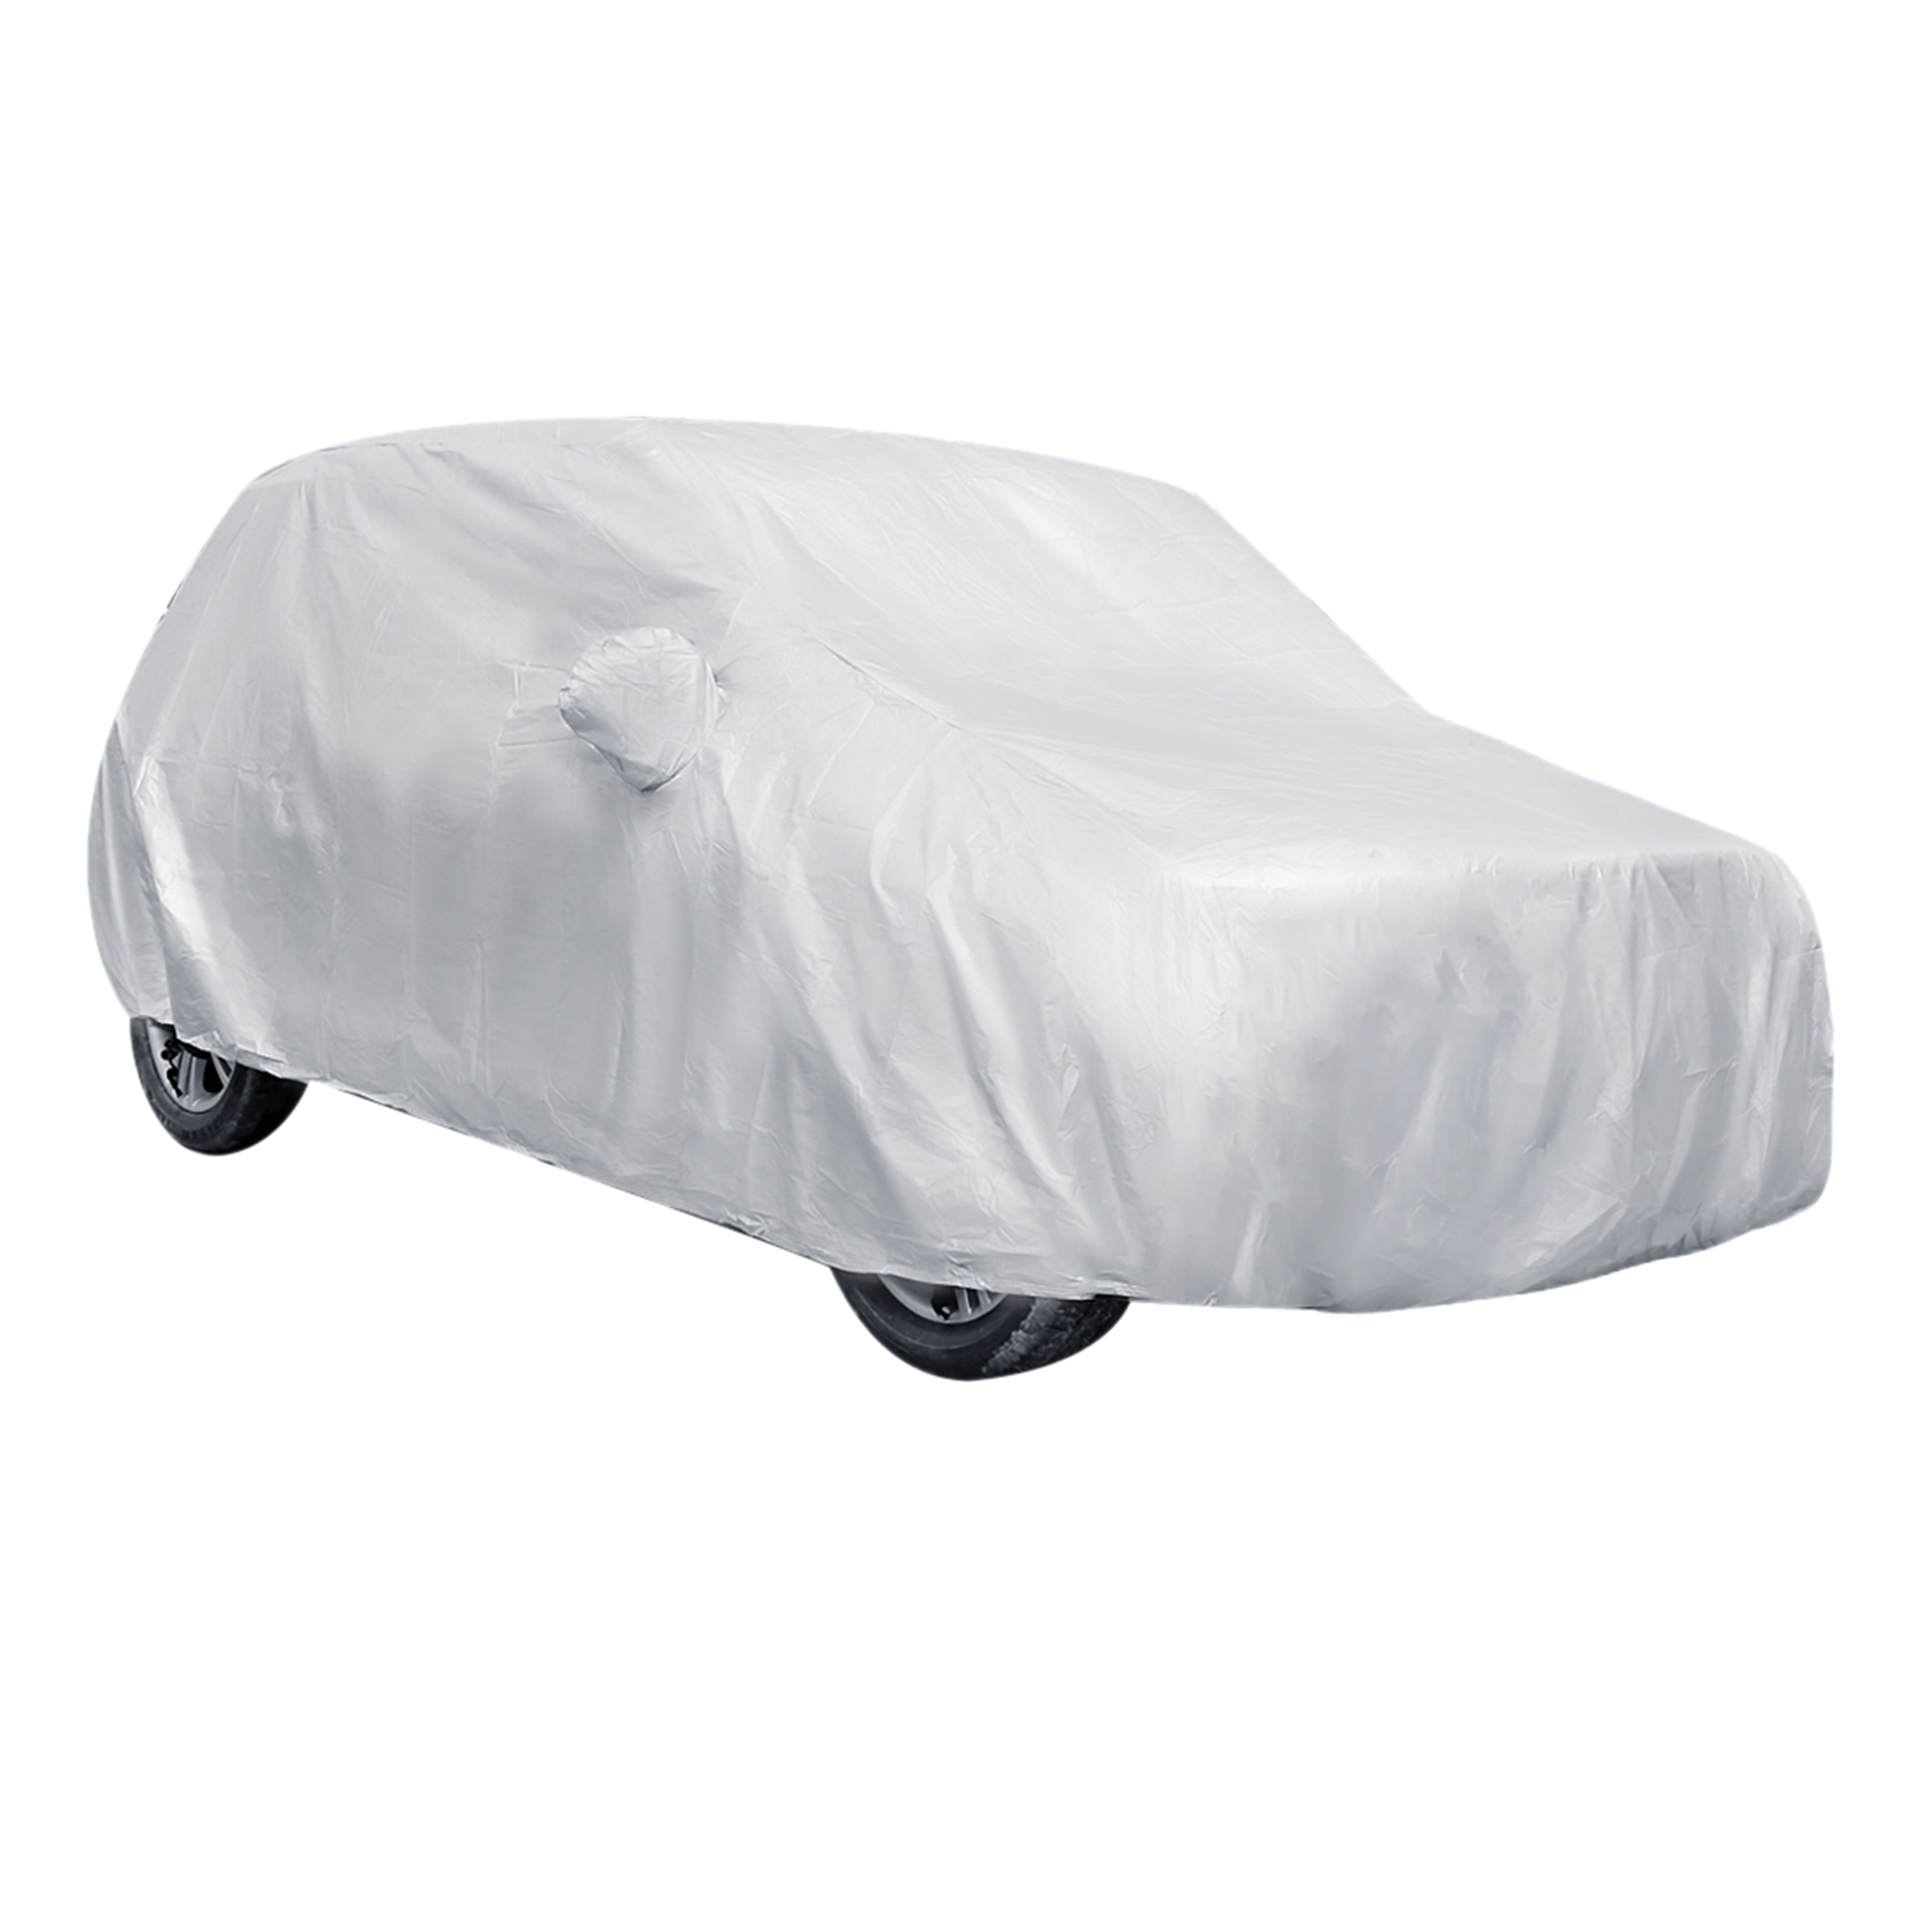 Silver Tone Waterproof Sun UV Dust Rain Resistant All Weather Protective Car Cover Size YL 480*175*150(L*W*H)